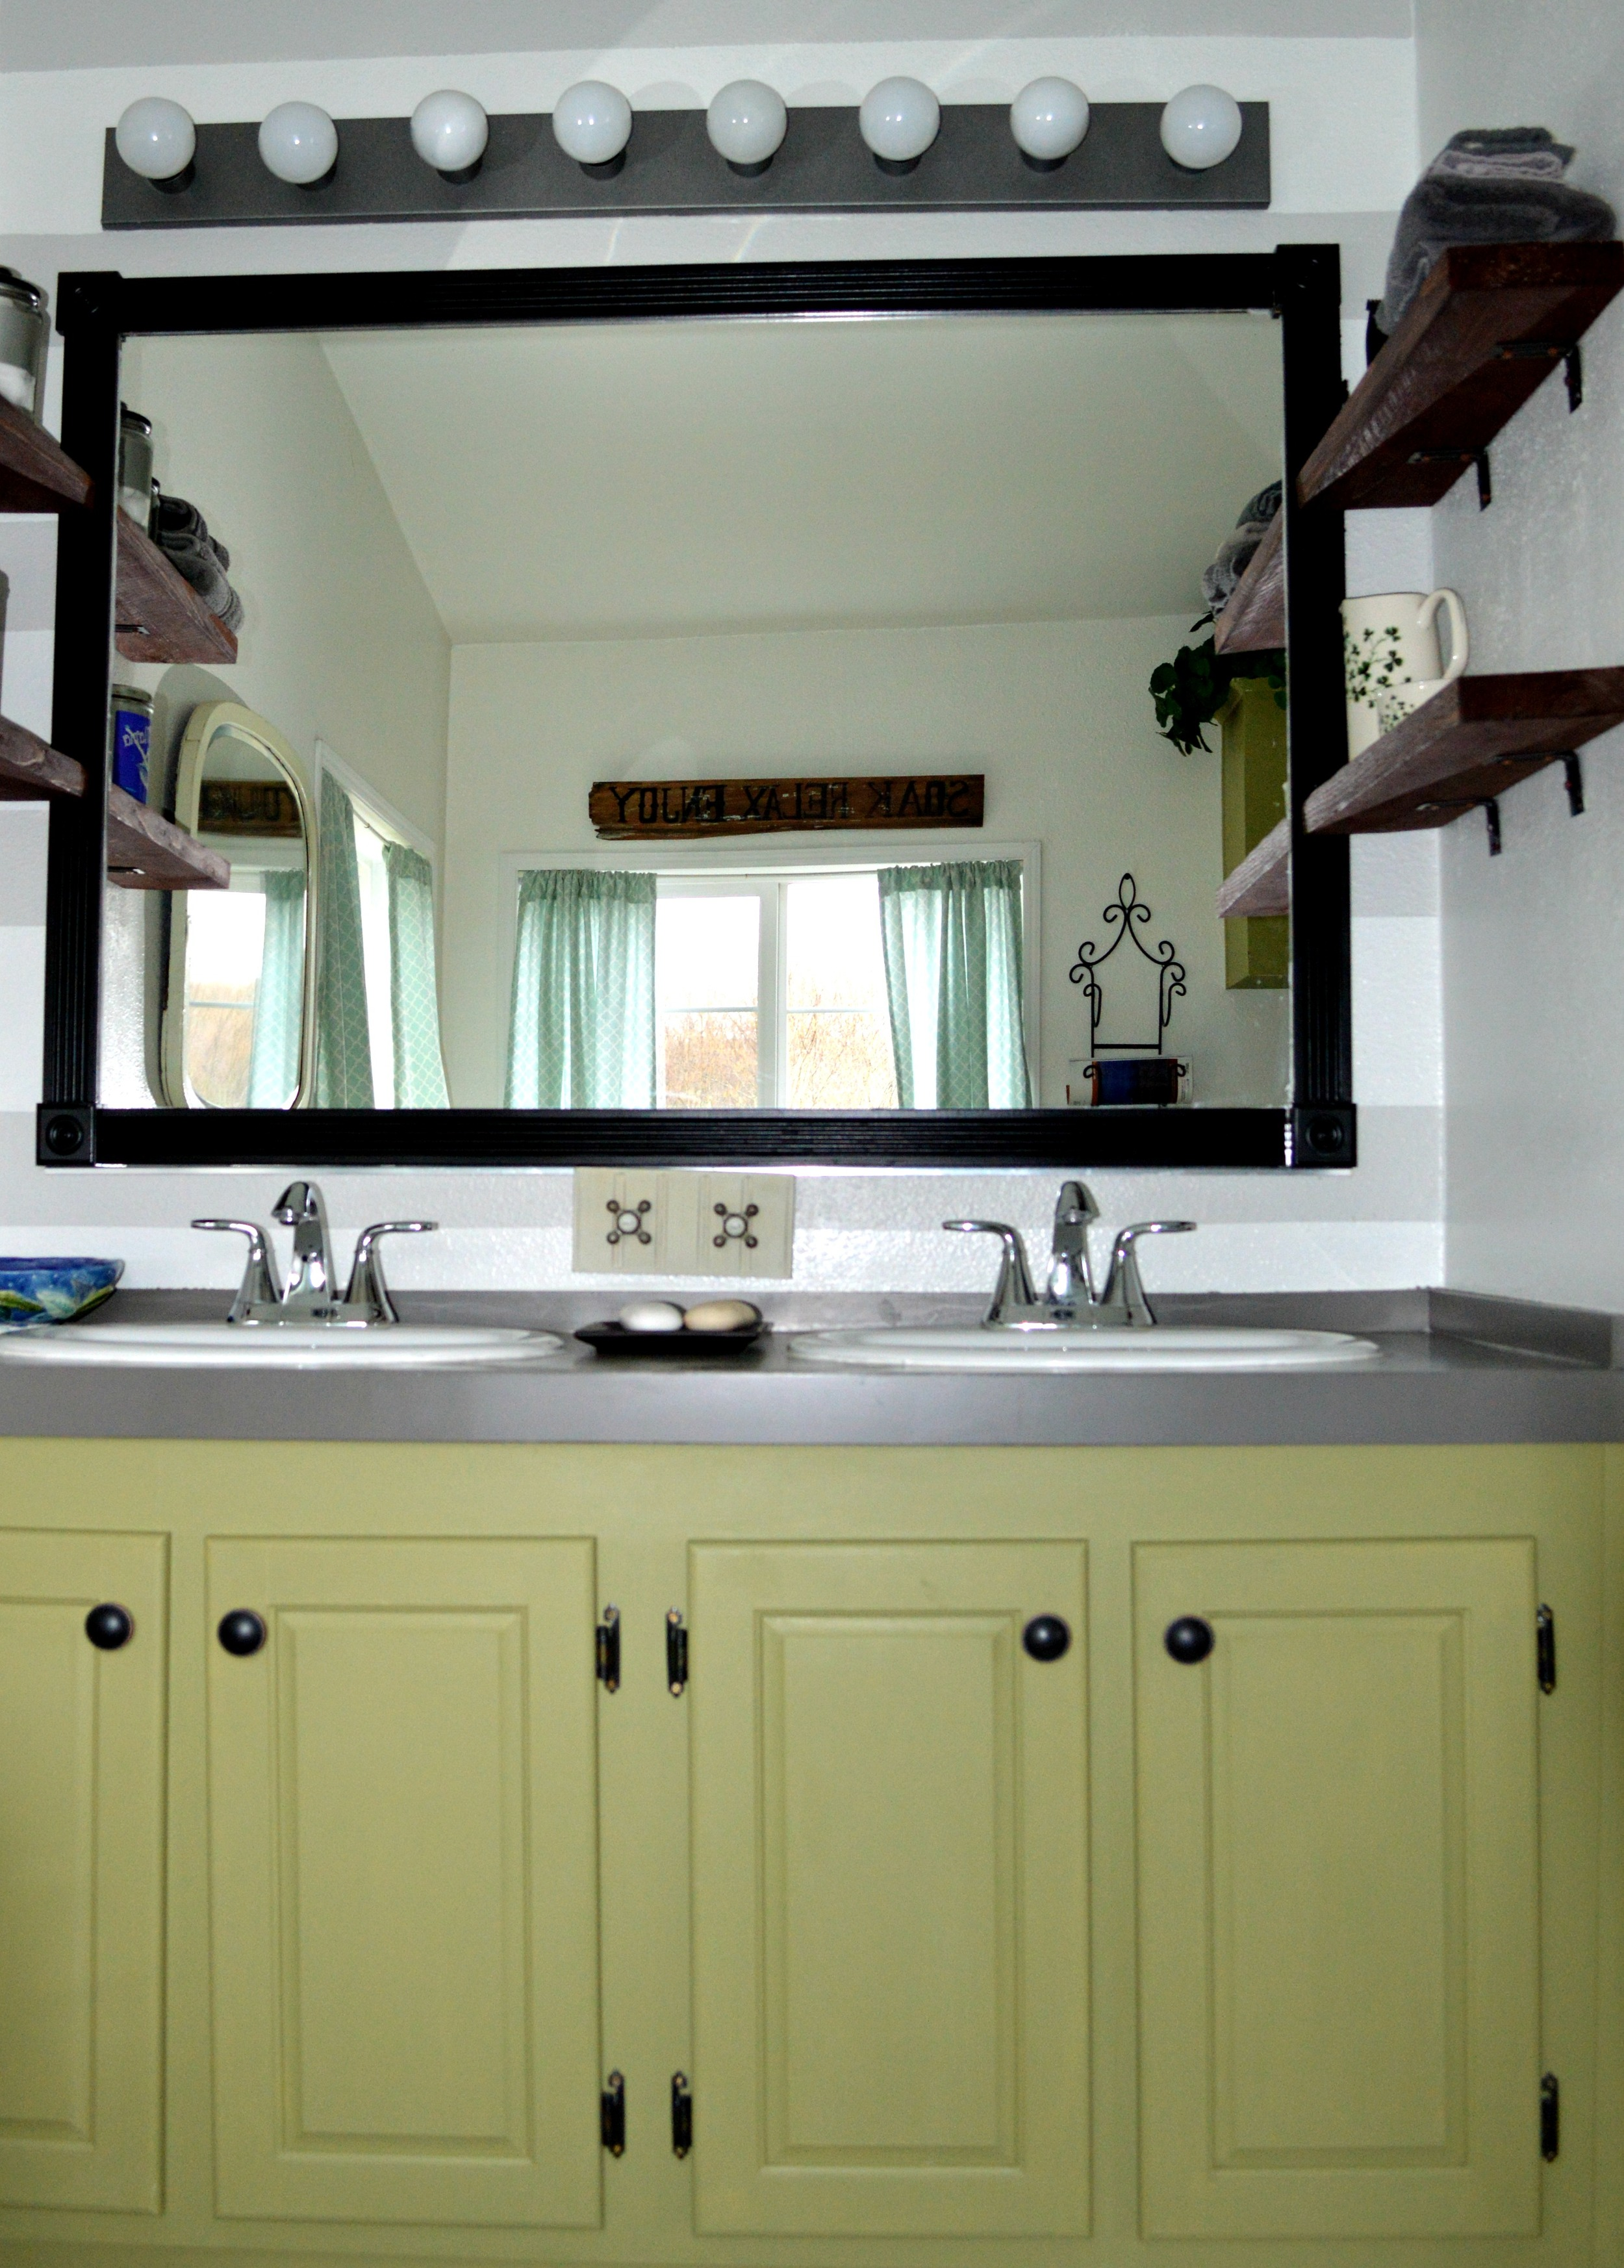 Give vanity new life with paint, trim, and hardware.